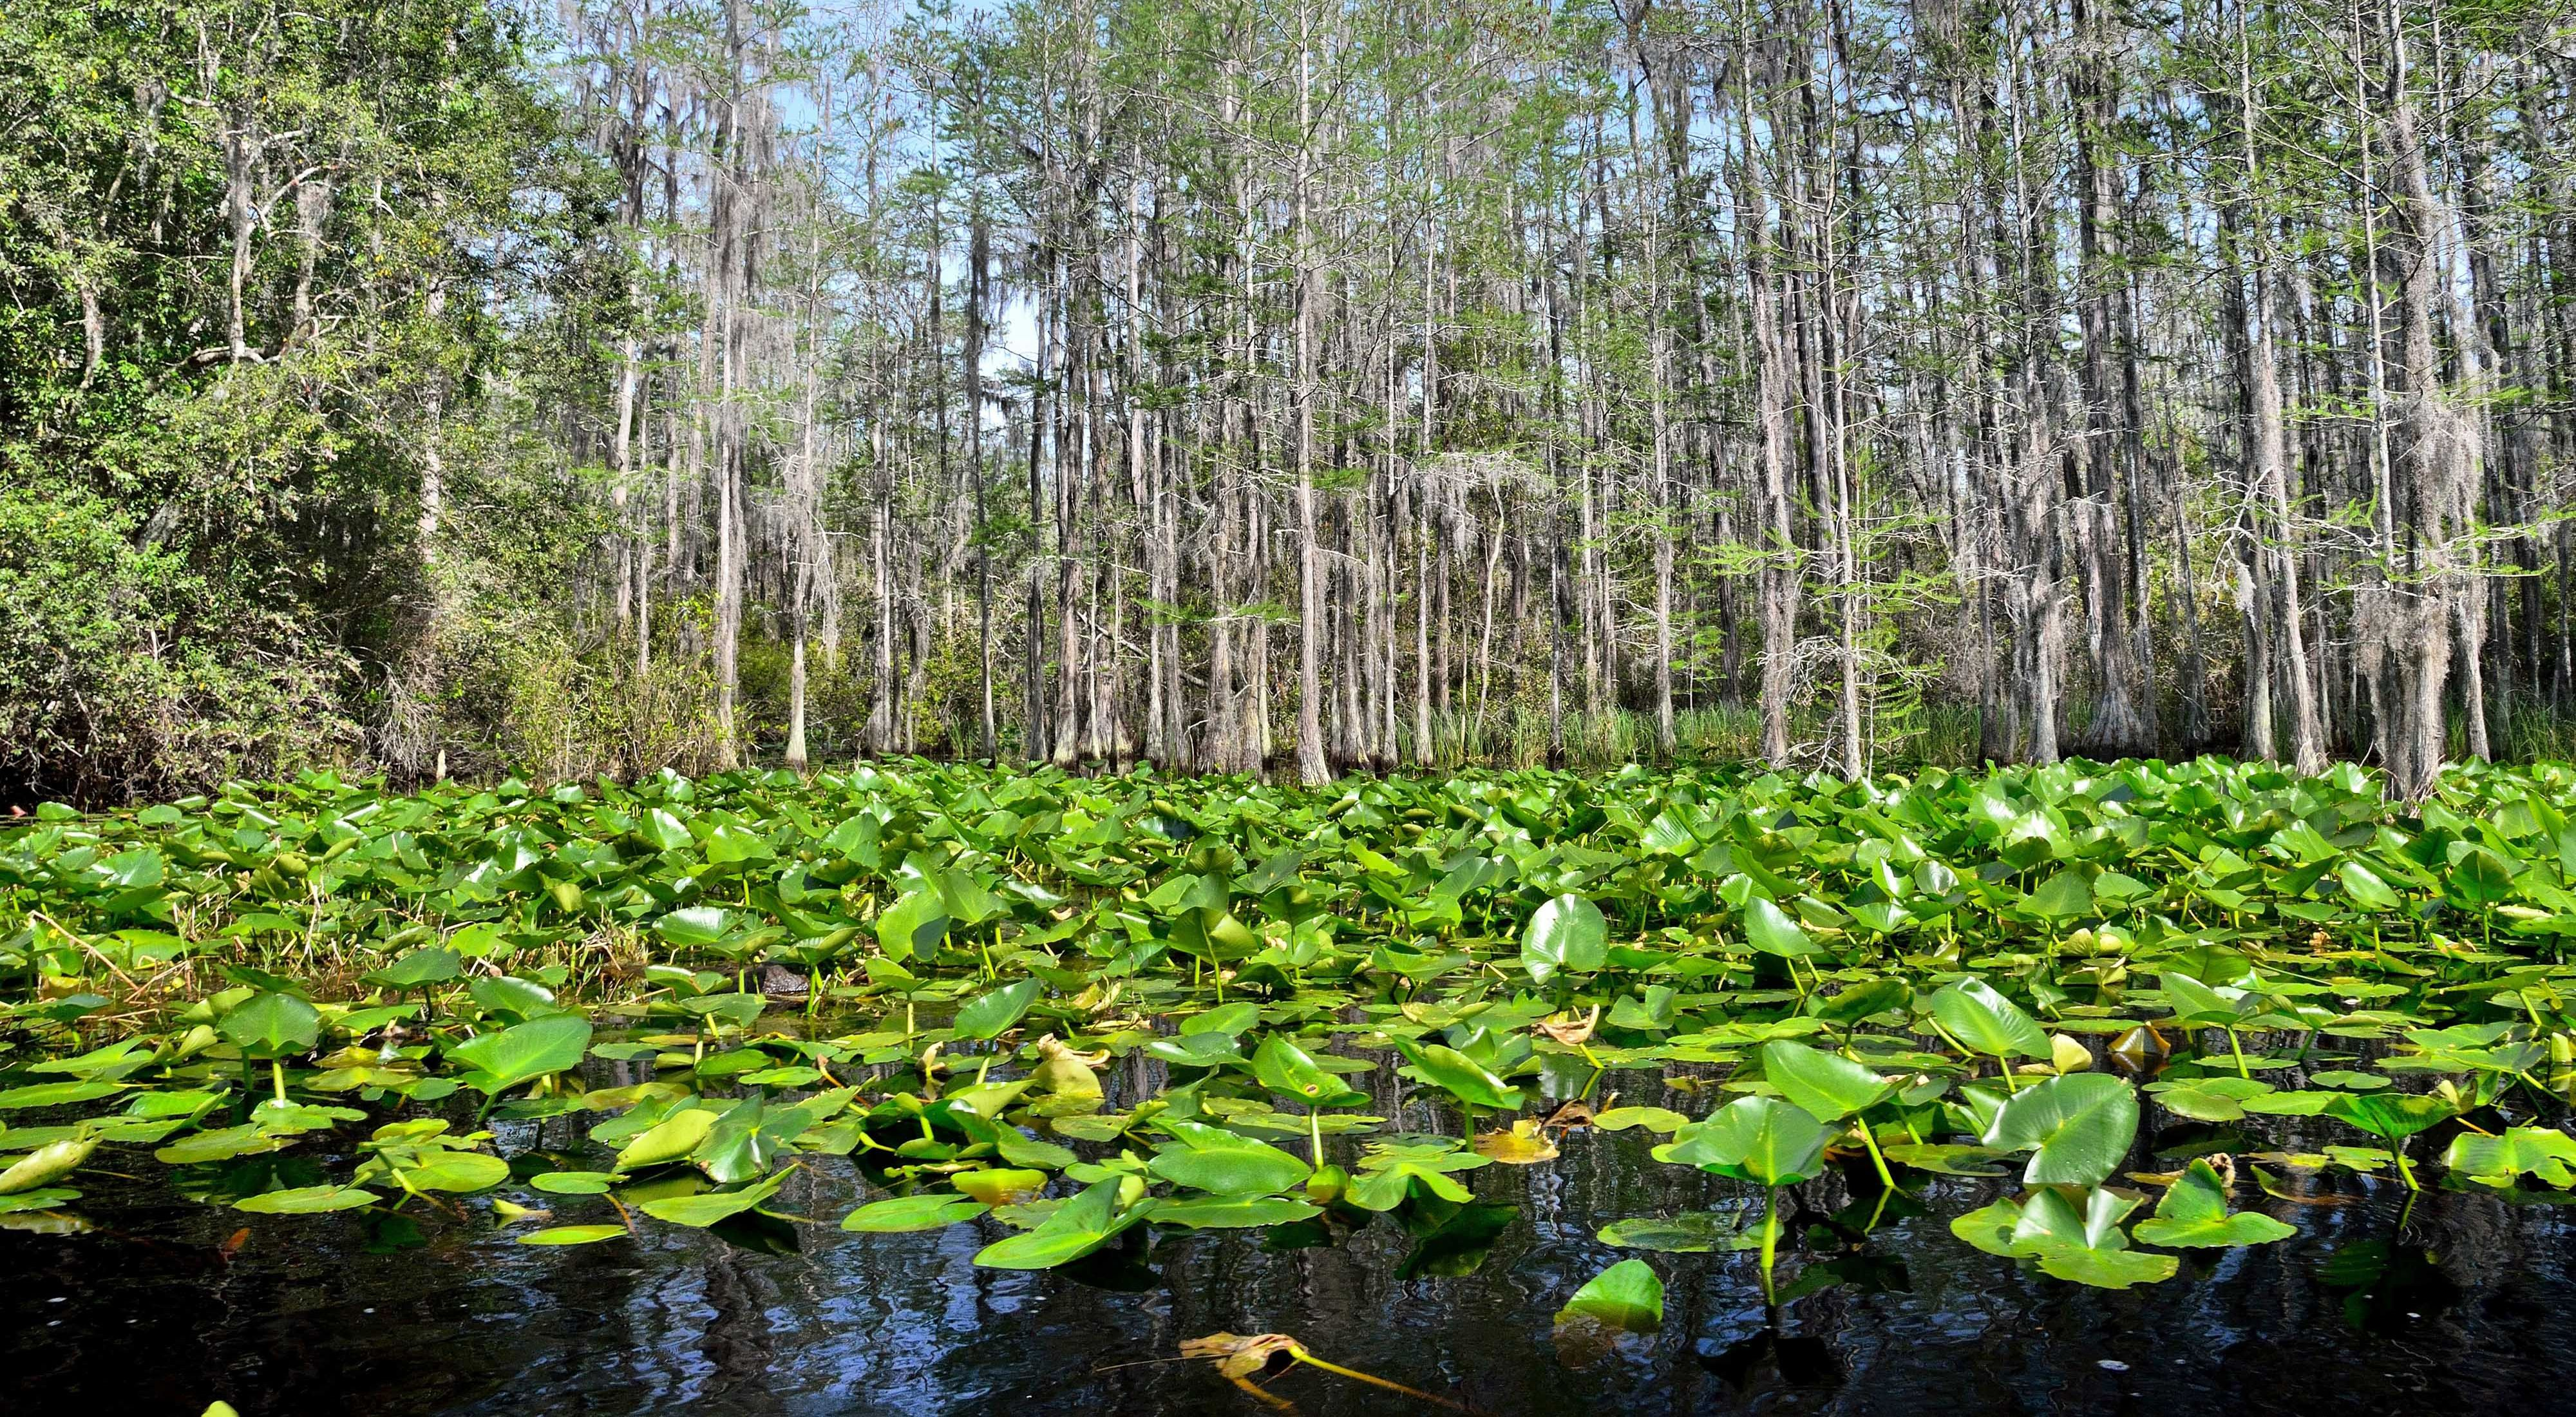 Lily pads and cypress trees are among the many plant species that thrive in the Okefenokee National Wildlife Refuge.